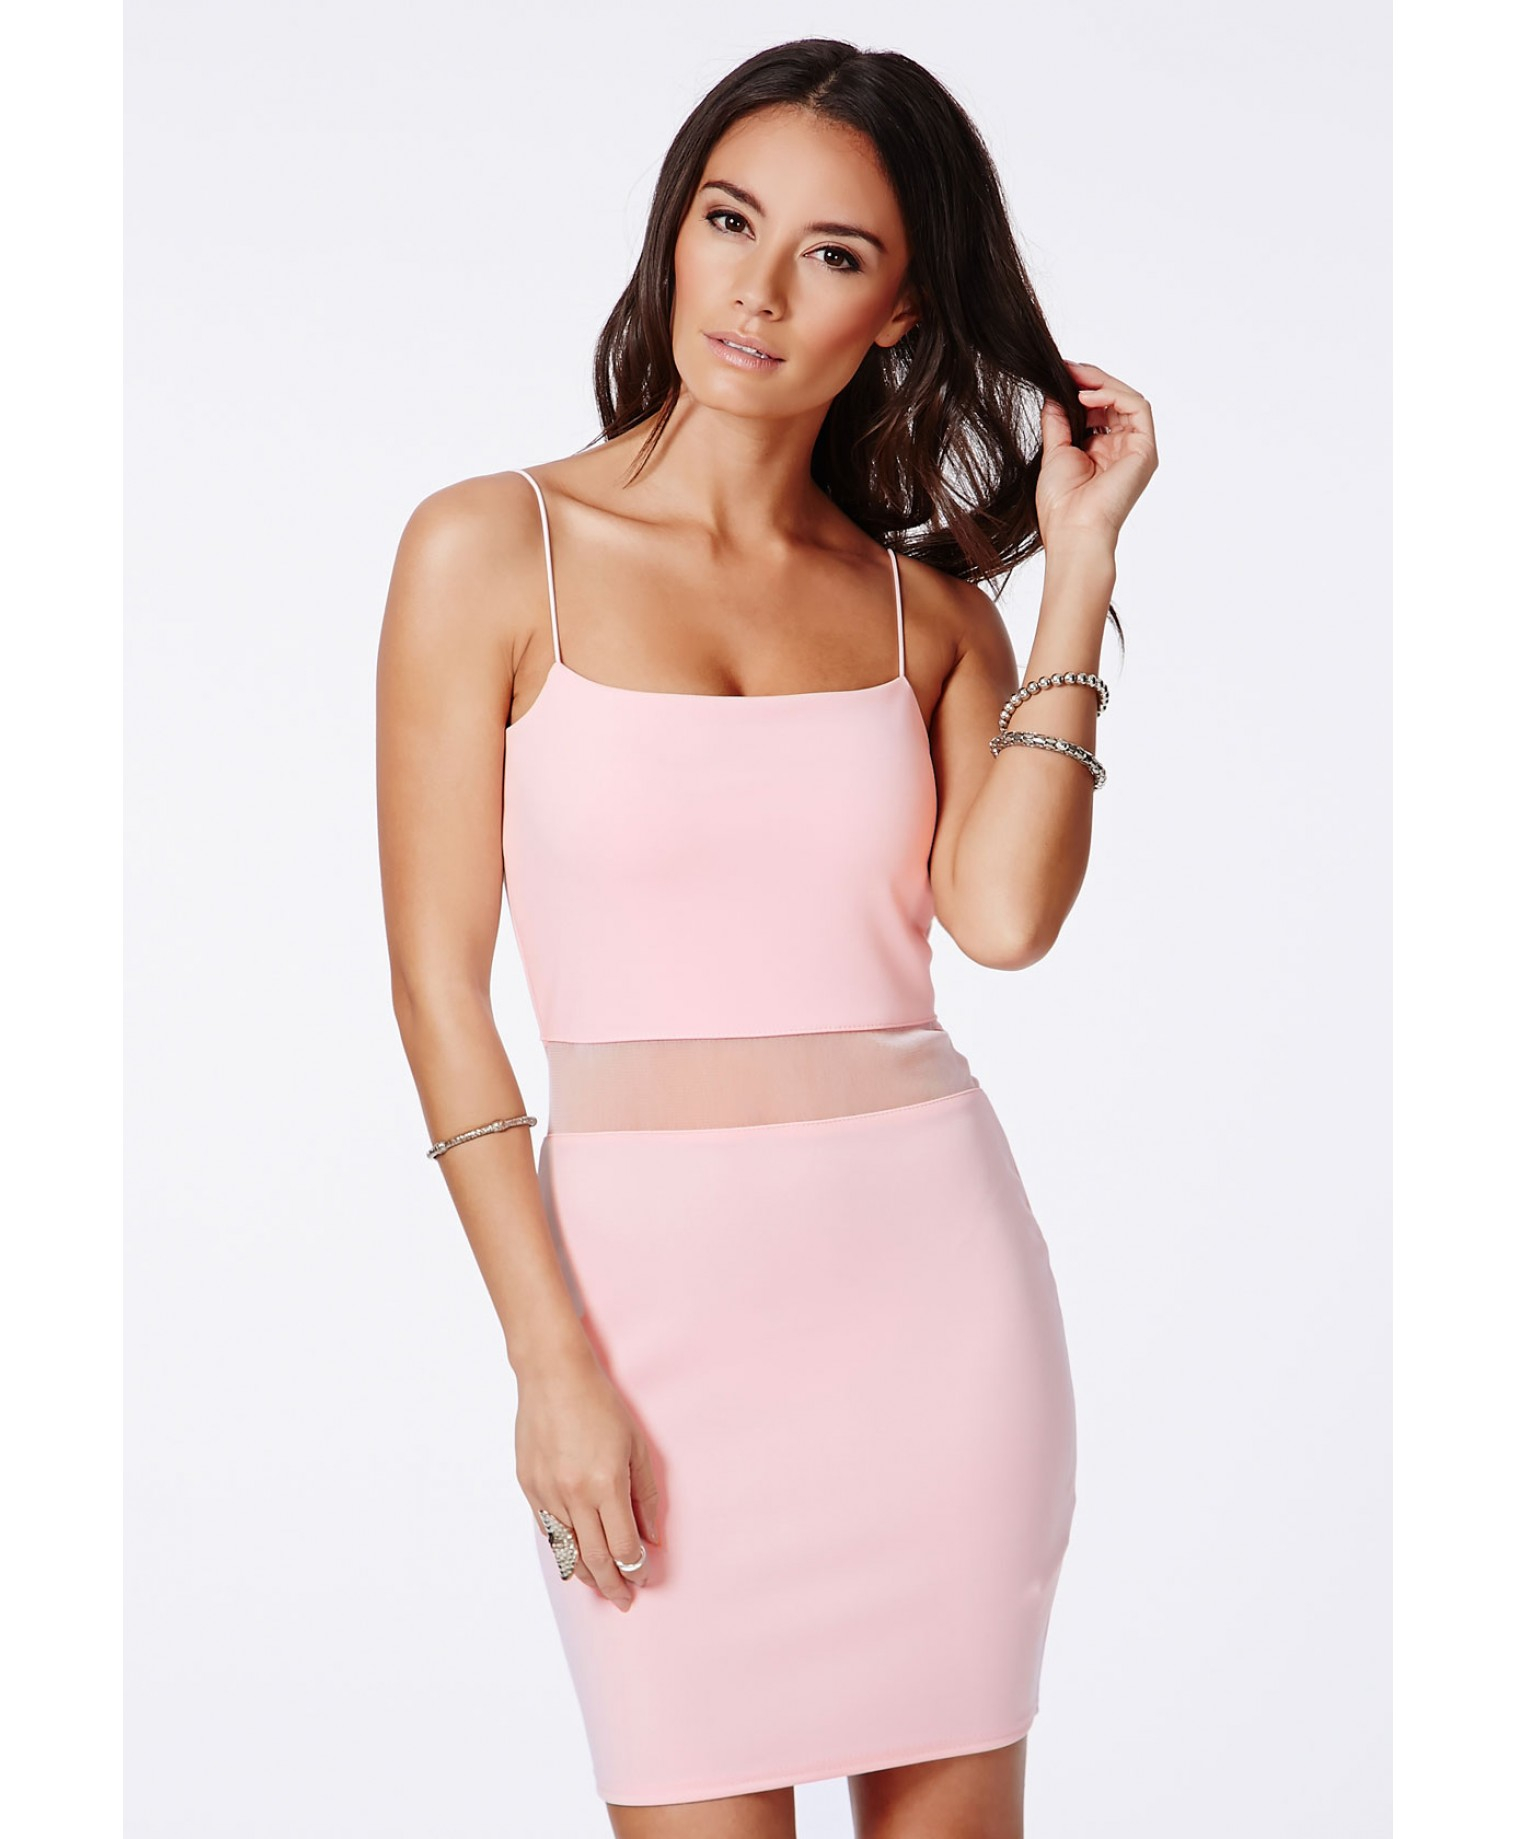 a5bfc361b34d Lyst - Missguided Lotye Pink Mesh Panel Bodycon Dress in Pink